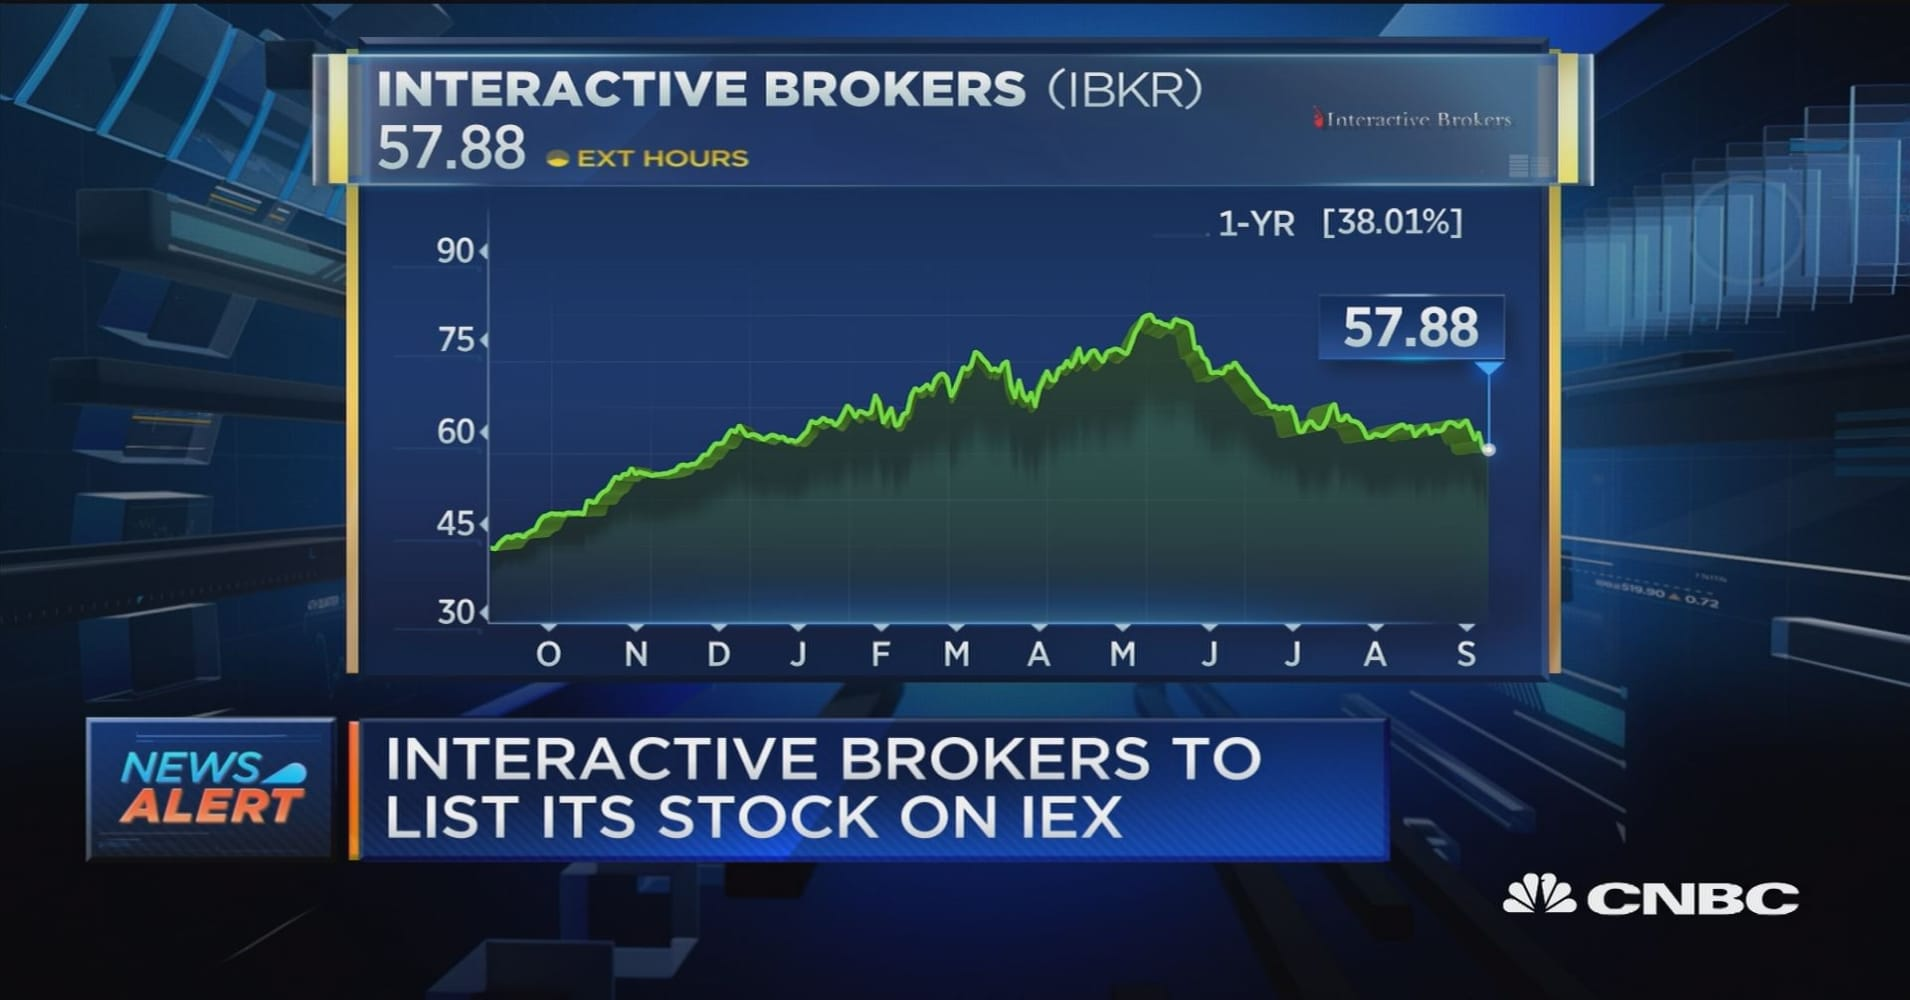 Interactive Brokers to list its stock on IEX